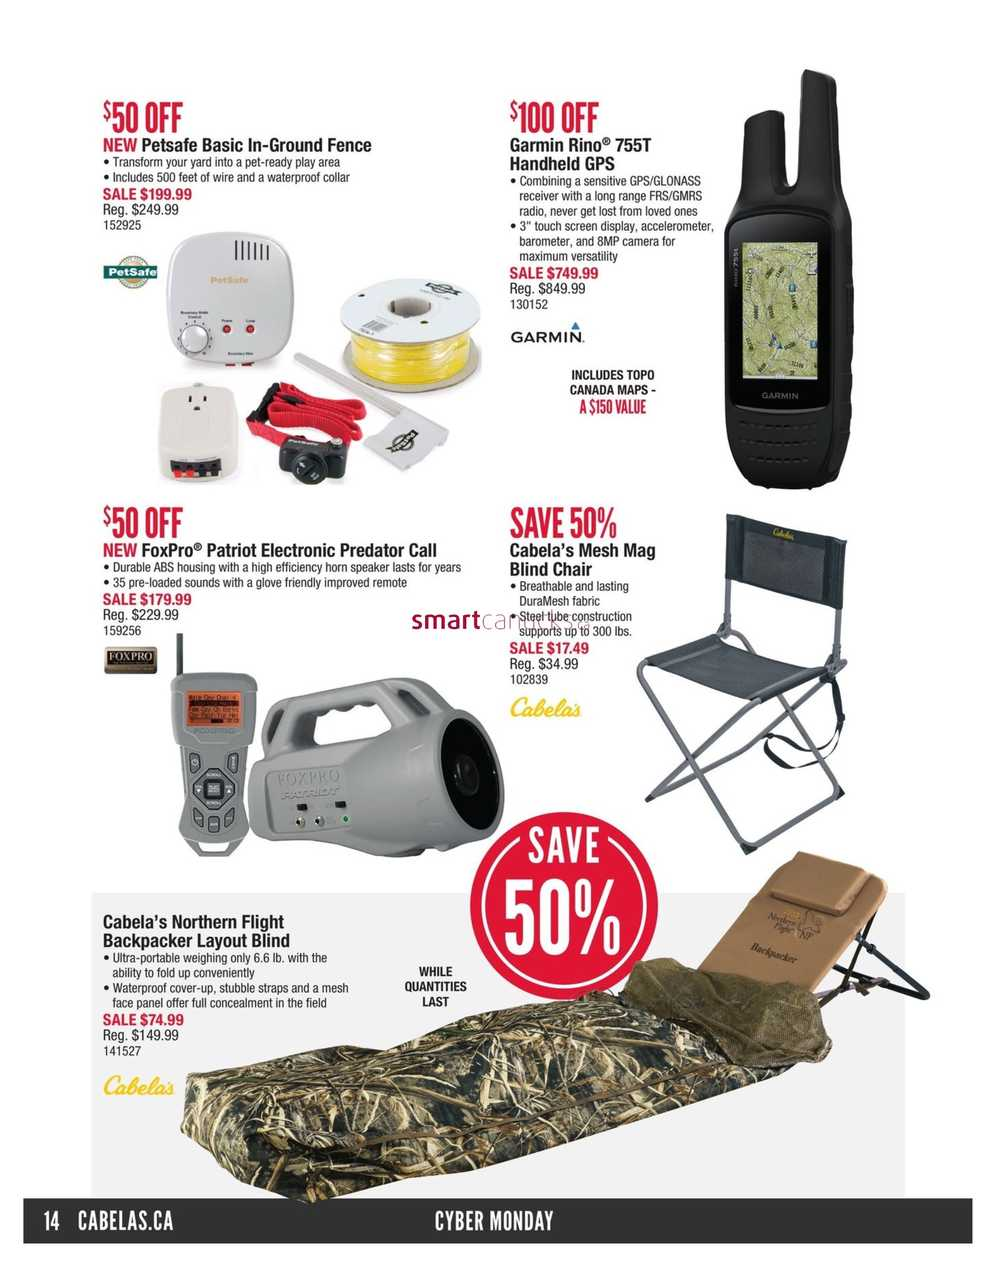 Cabela s Cyber Monday Flyer November 26 to 30